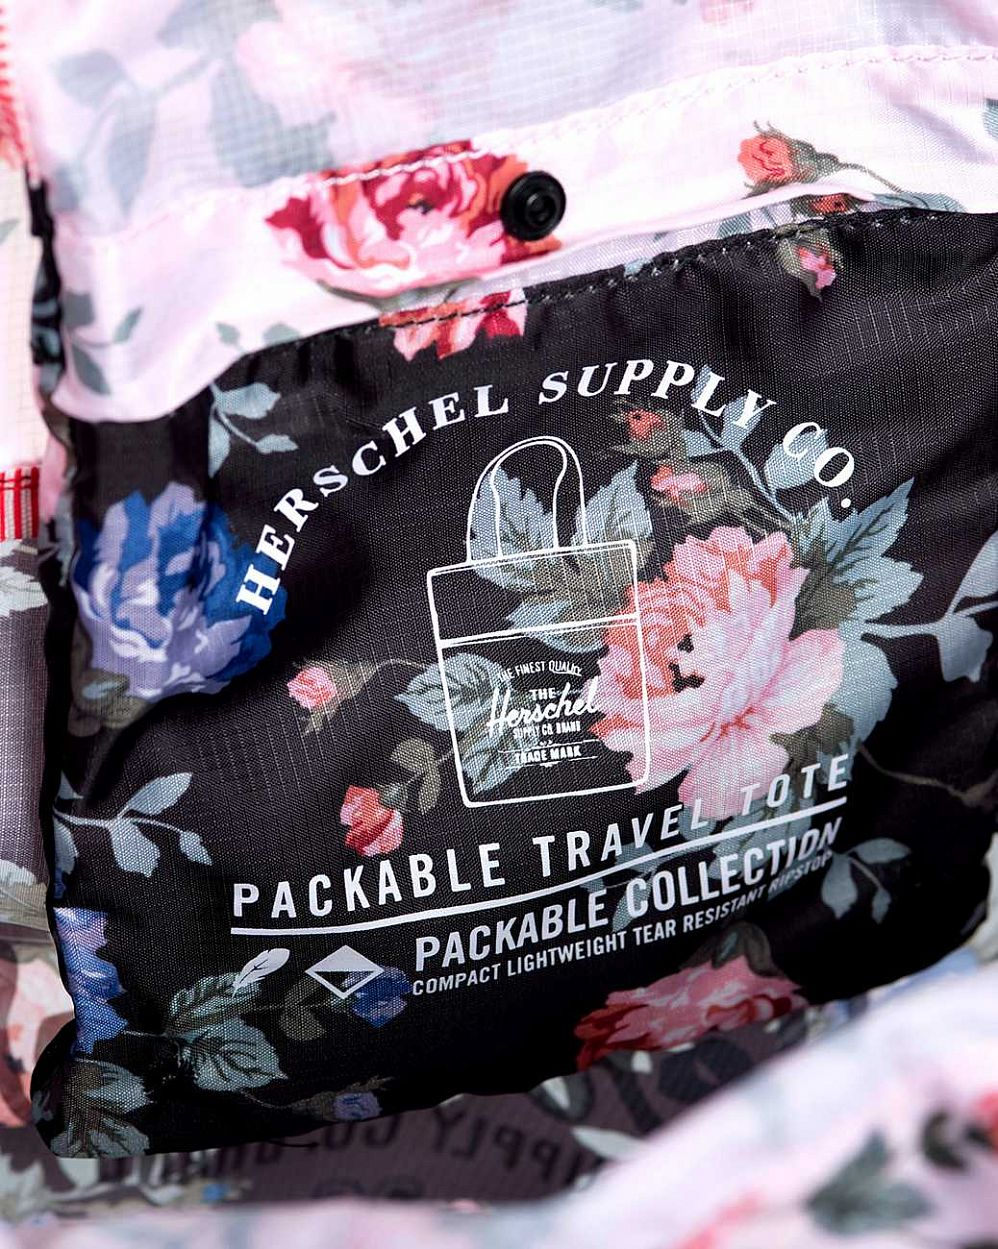 Сумка складная Herschel Packable Travel Tote Bag Black Floral Pink Floral интернет-магазин в Москве